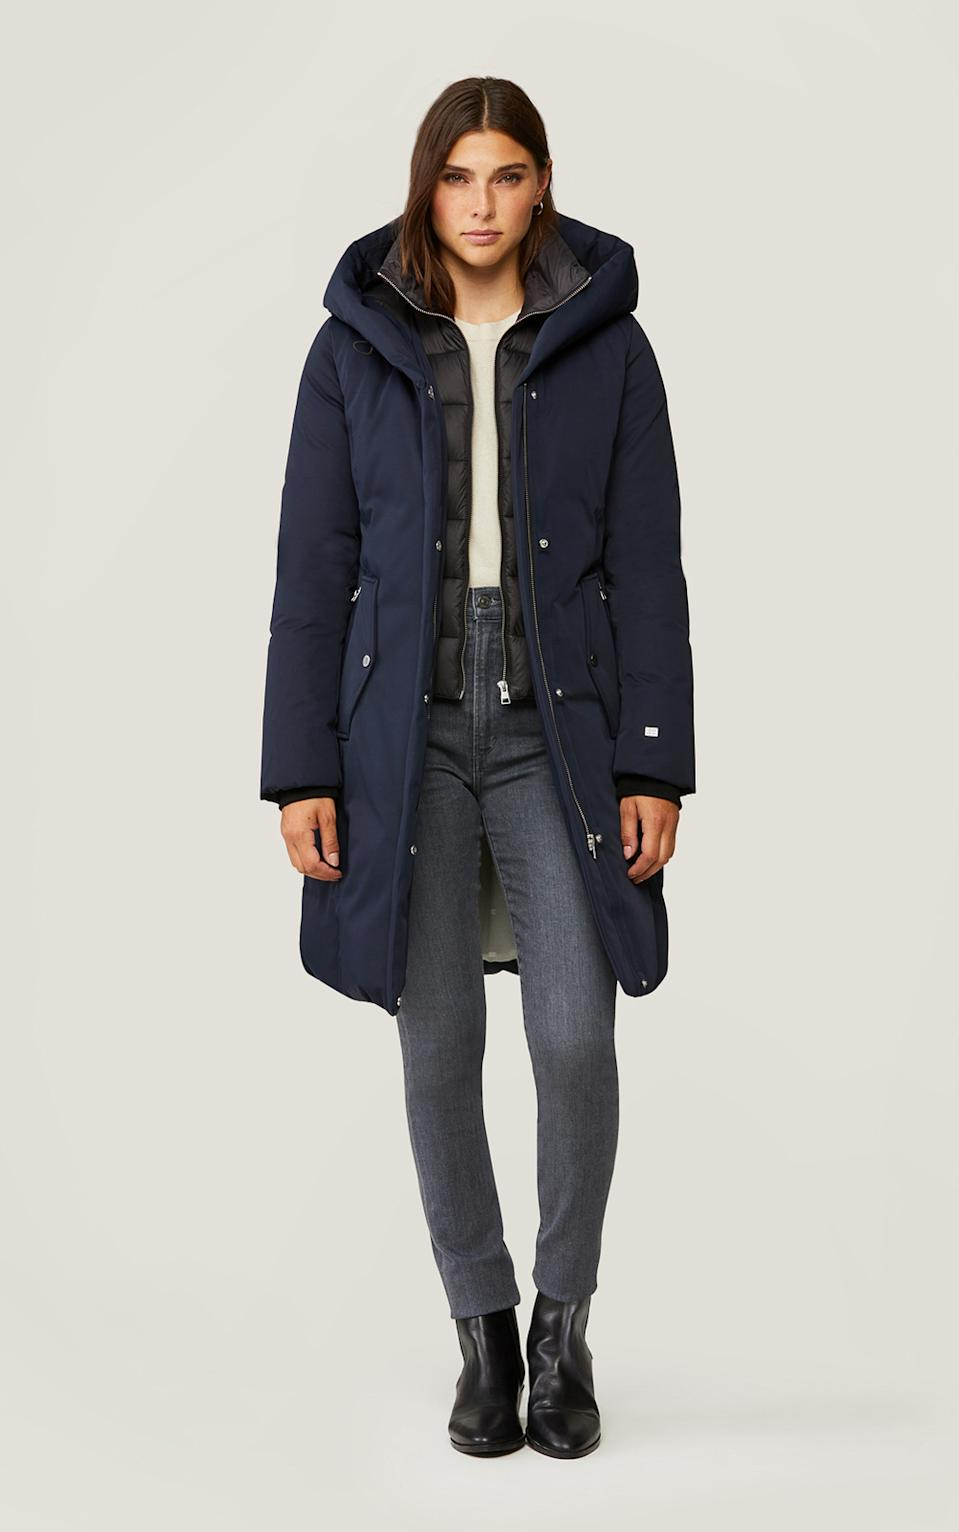 MALENE slim fit classic down coat with hood - SOIYA & KYO, $357 (originally $595)